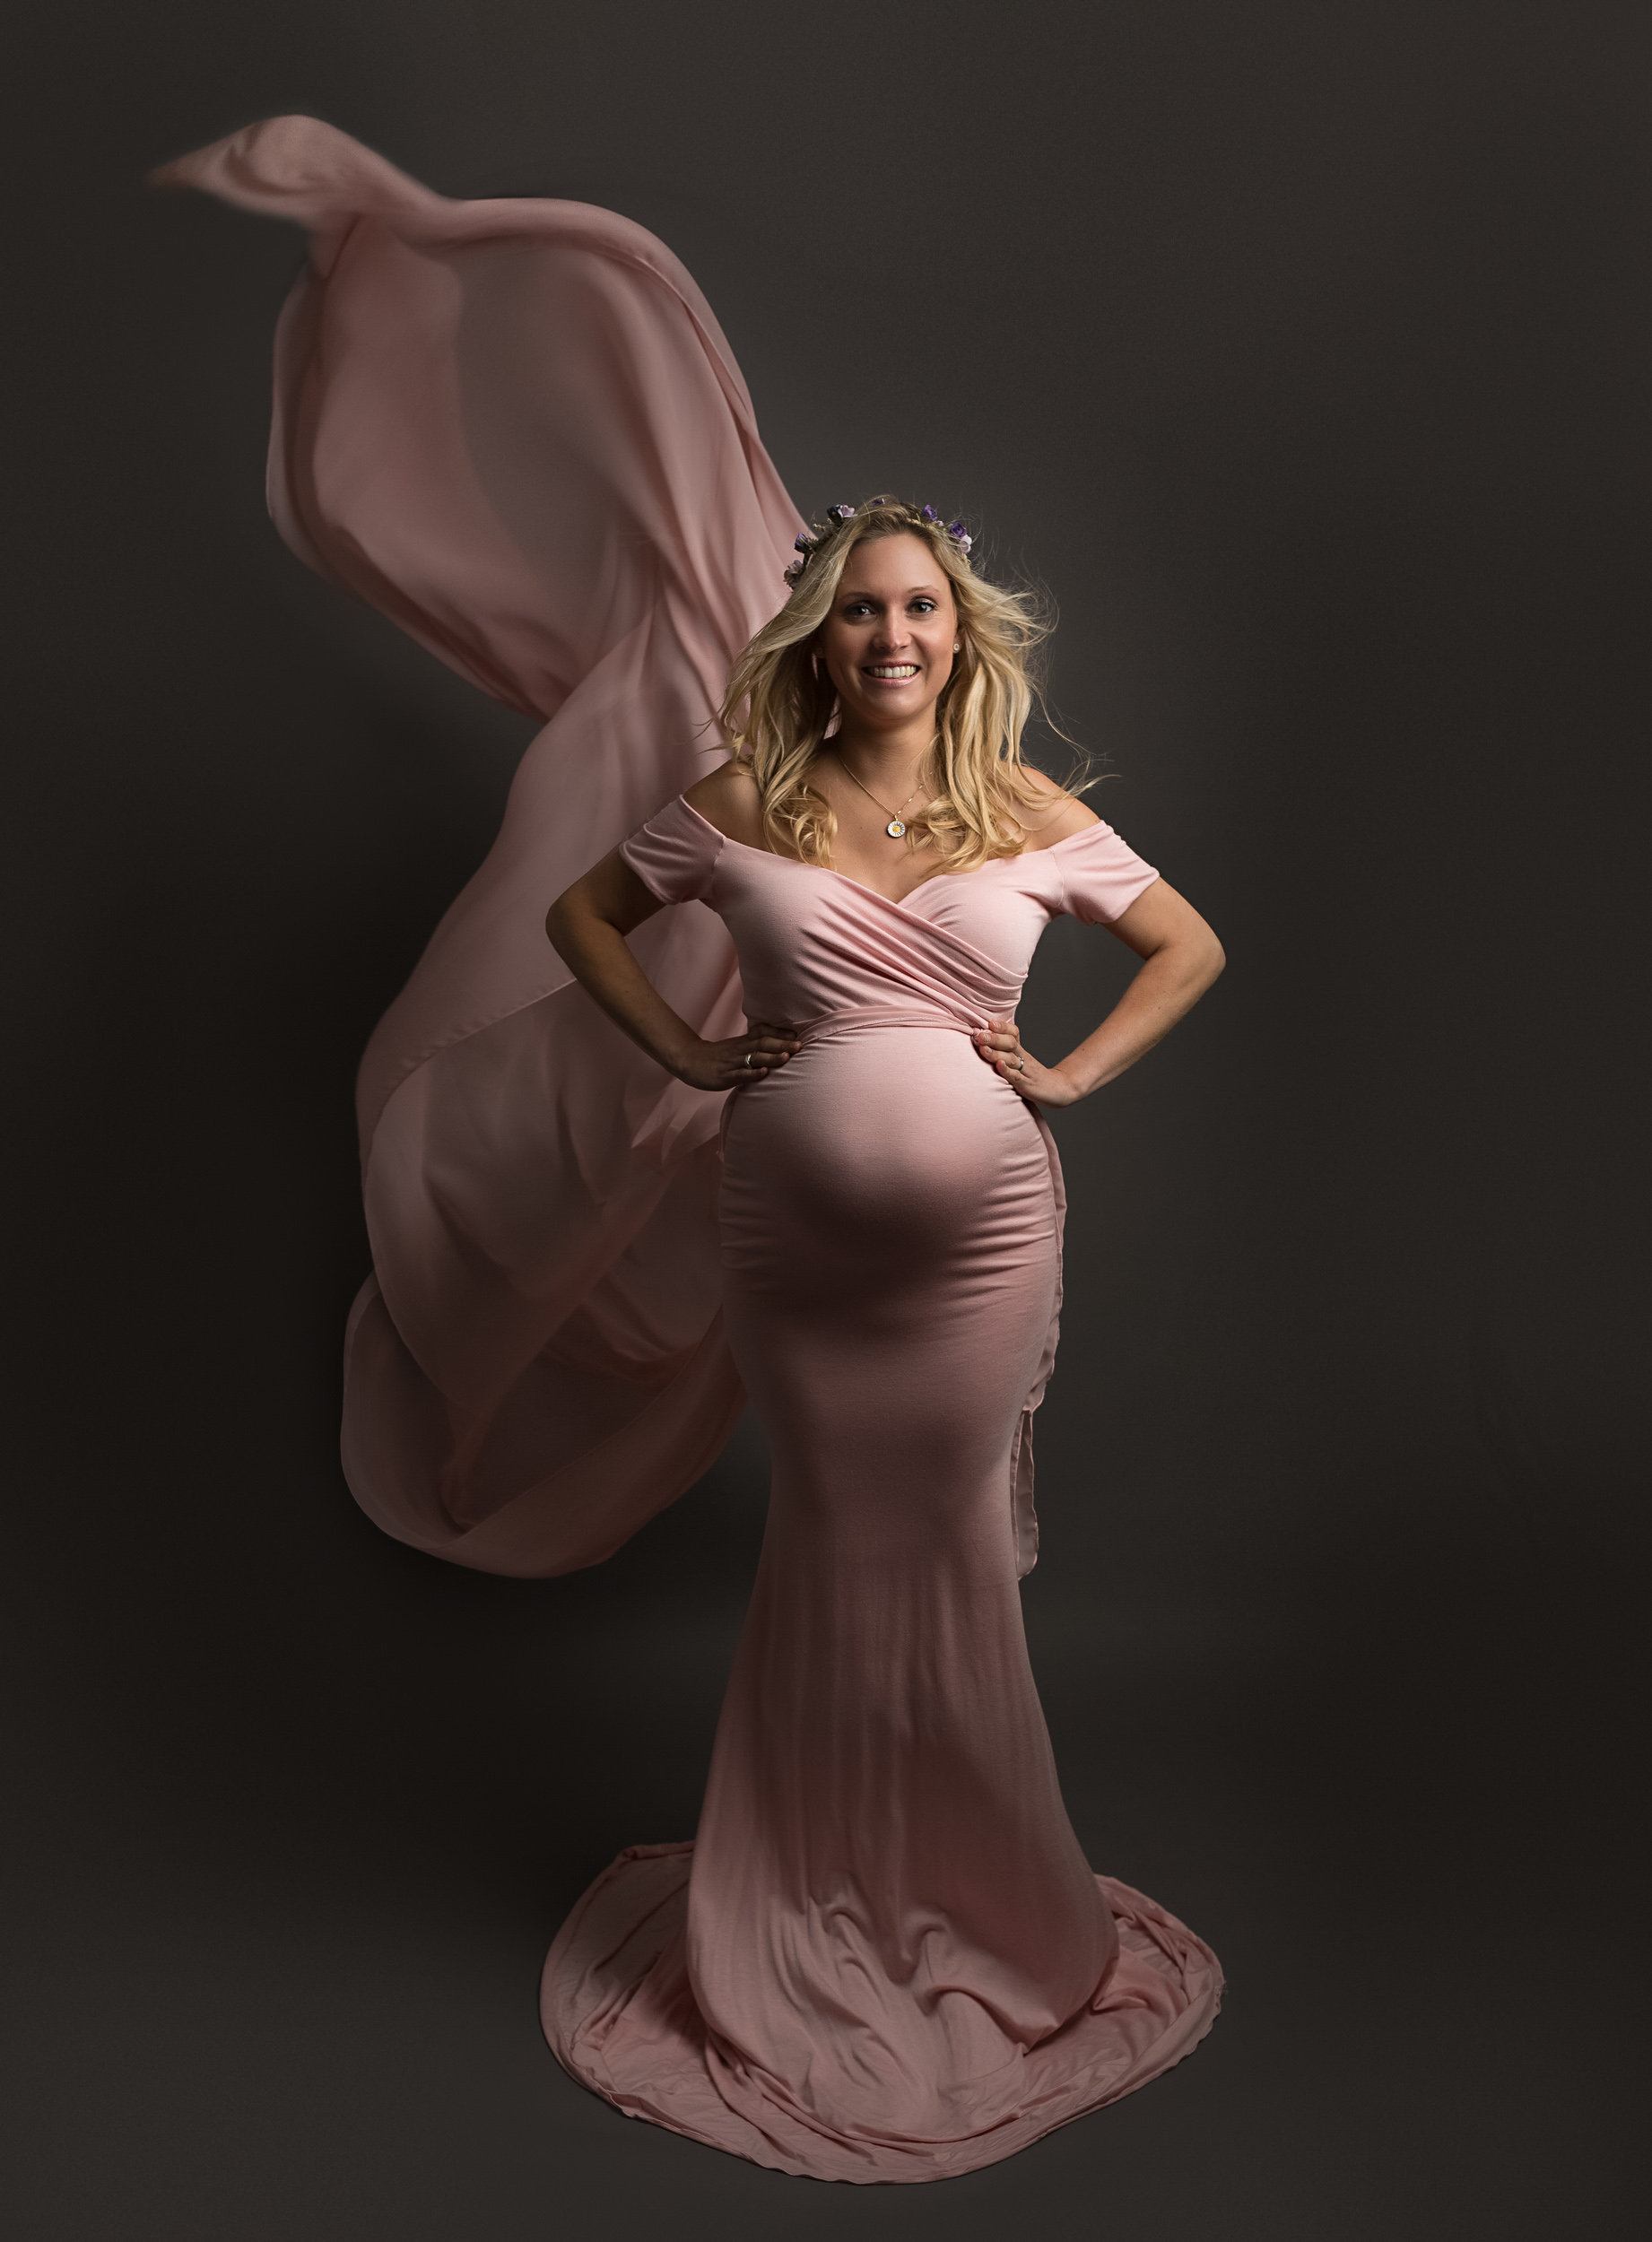 Pregnant lady in a floating pink dress at her maternity photo shoot in Sandbach, Cheshire